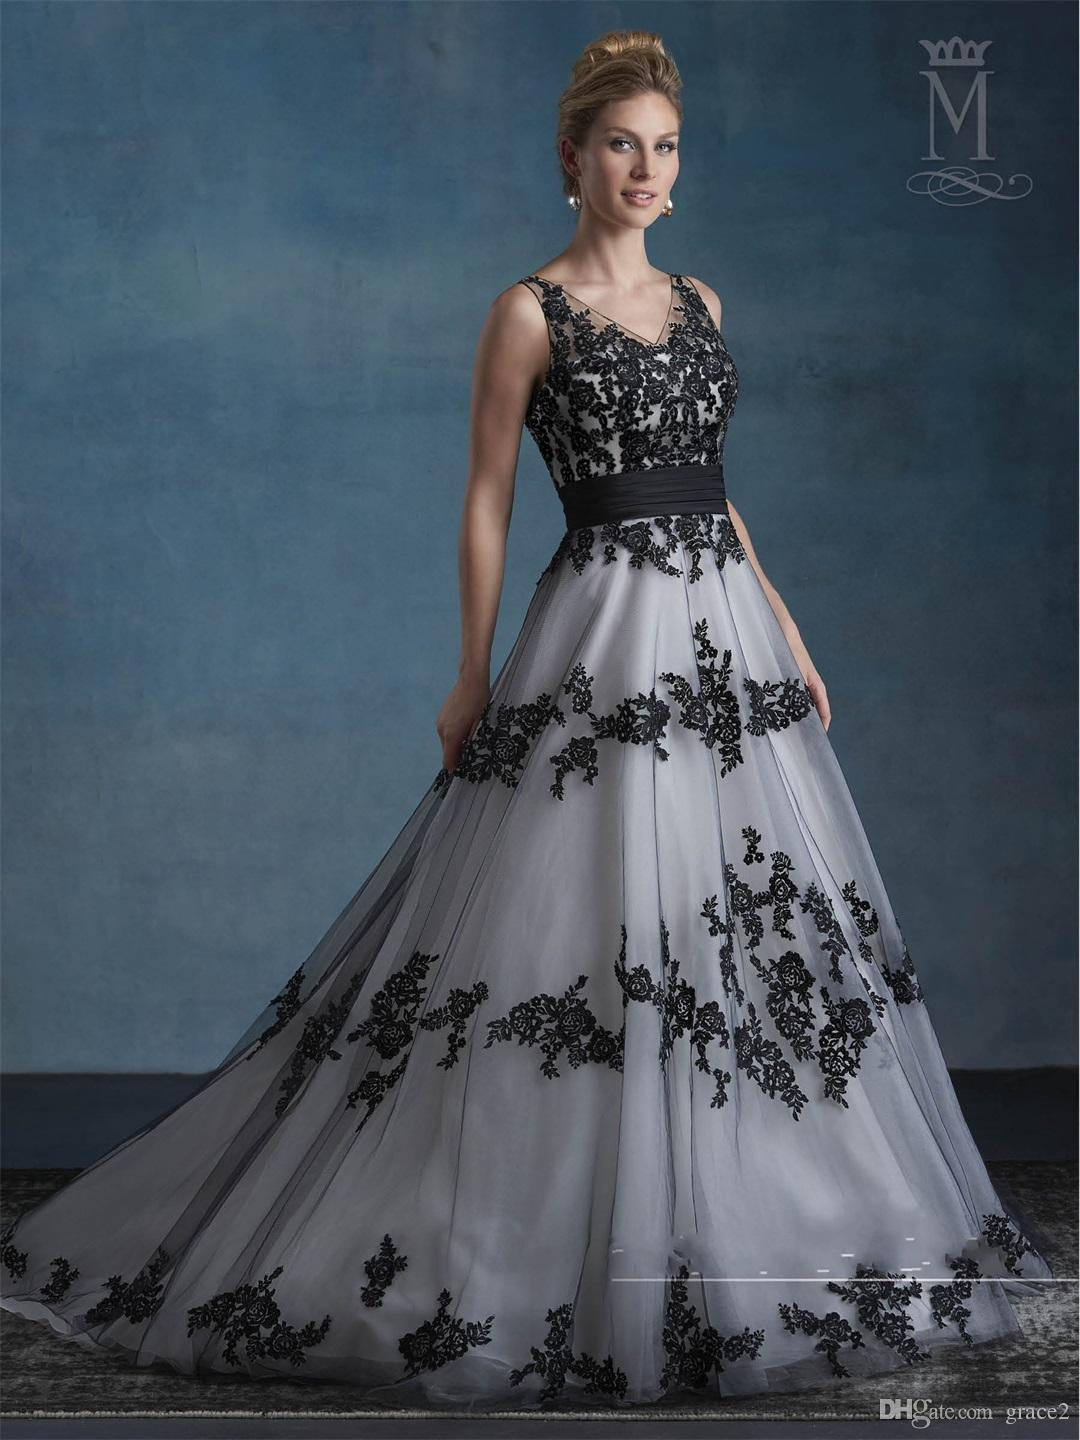 Black And White Wedding Dress.Discount Black White Wedding Dresses 2017 Mary S Bridal With V Neck And V Back Appliques Tulle A Line Brides Gowns Sleeveless Good For Garden Wedding